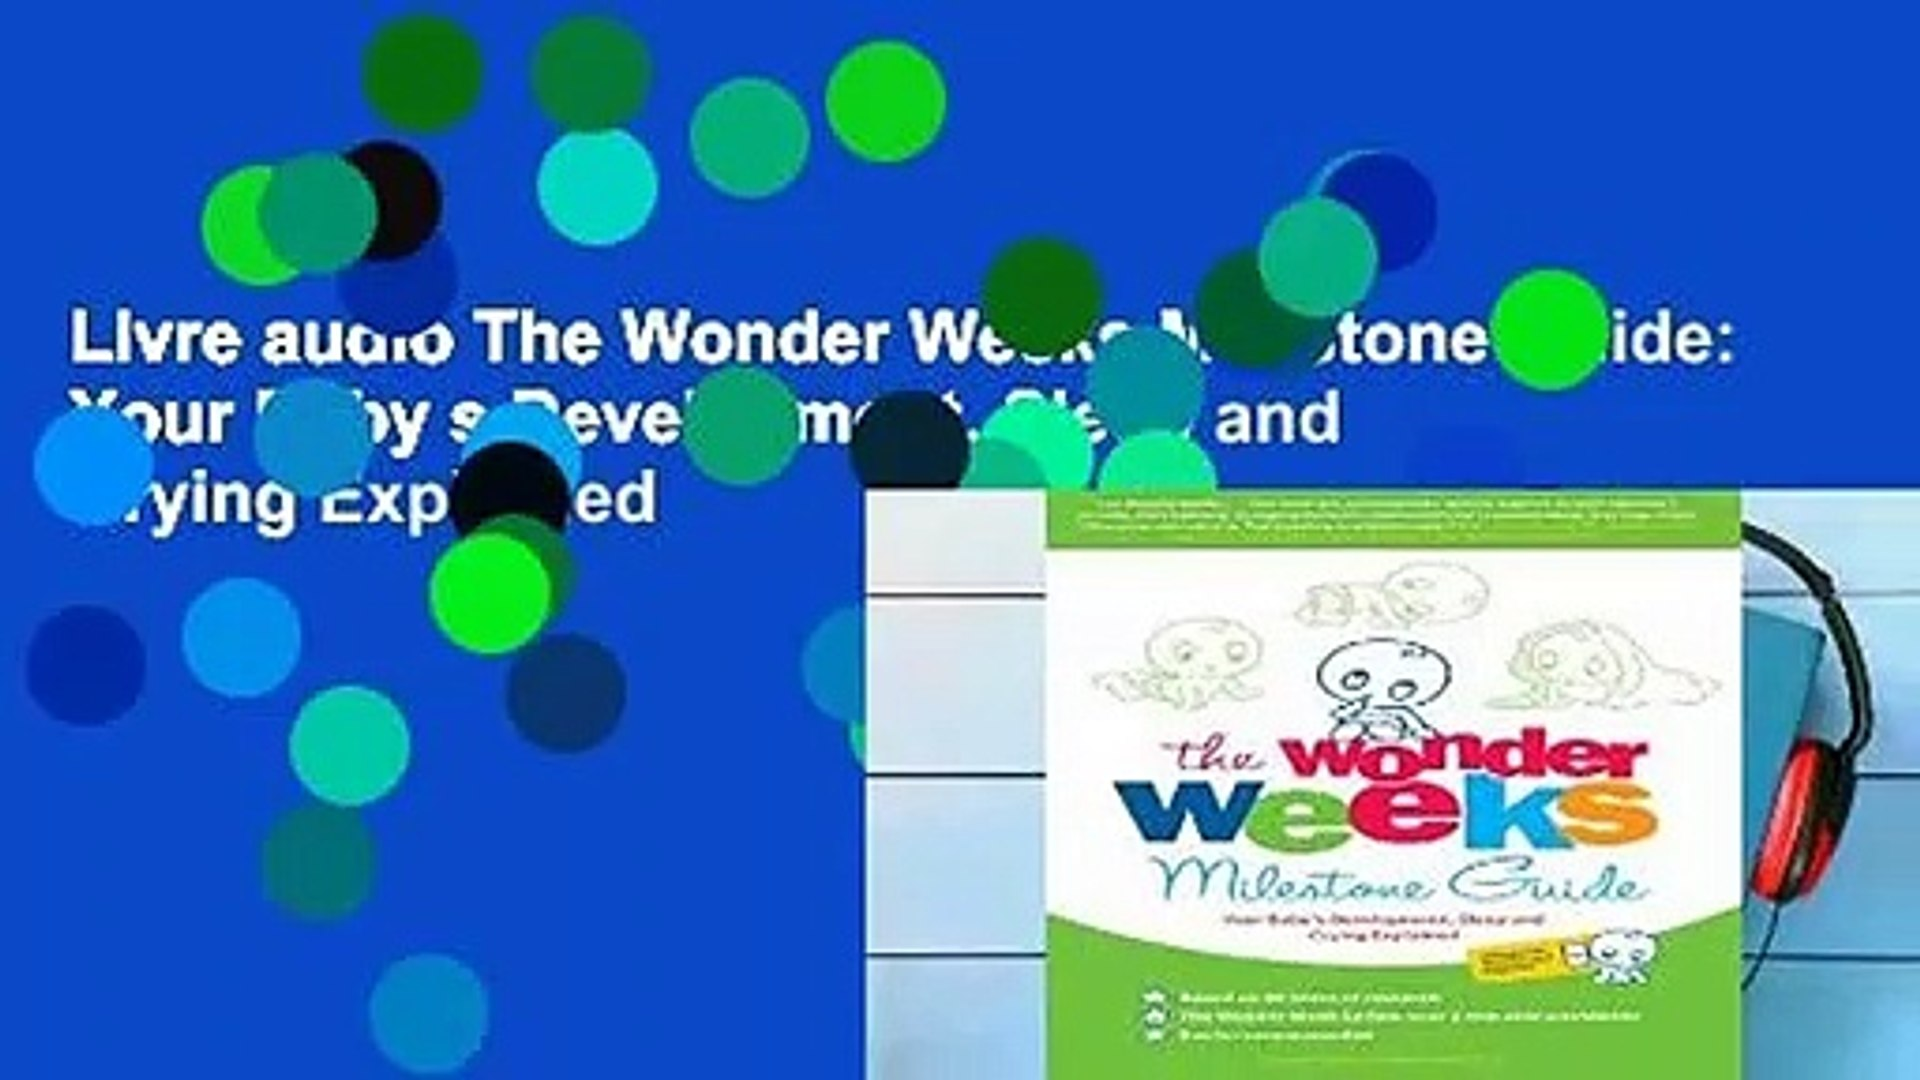 Livre Audio The Wonder Weeks Milestone Guide Your Baby S Development Sleep And Crying Explained